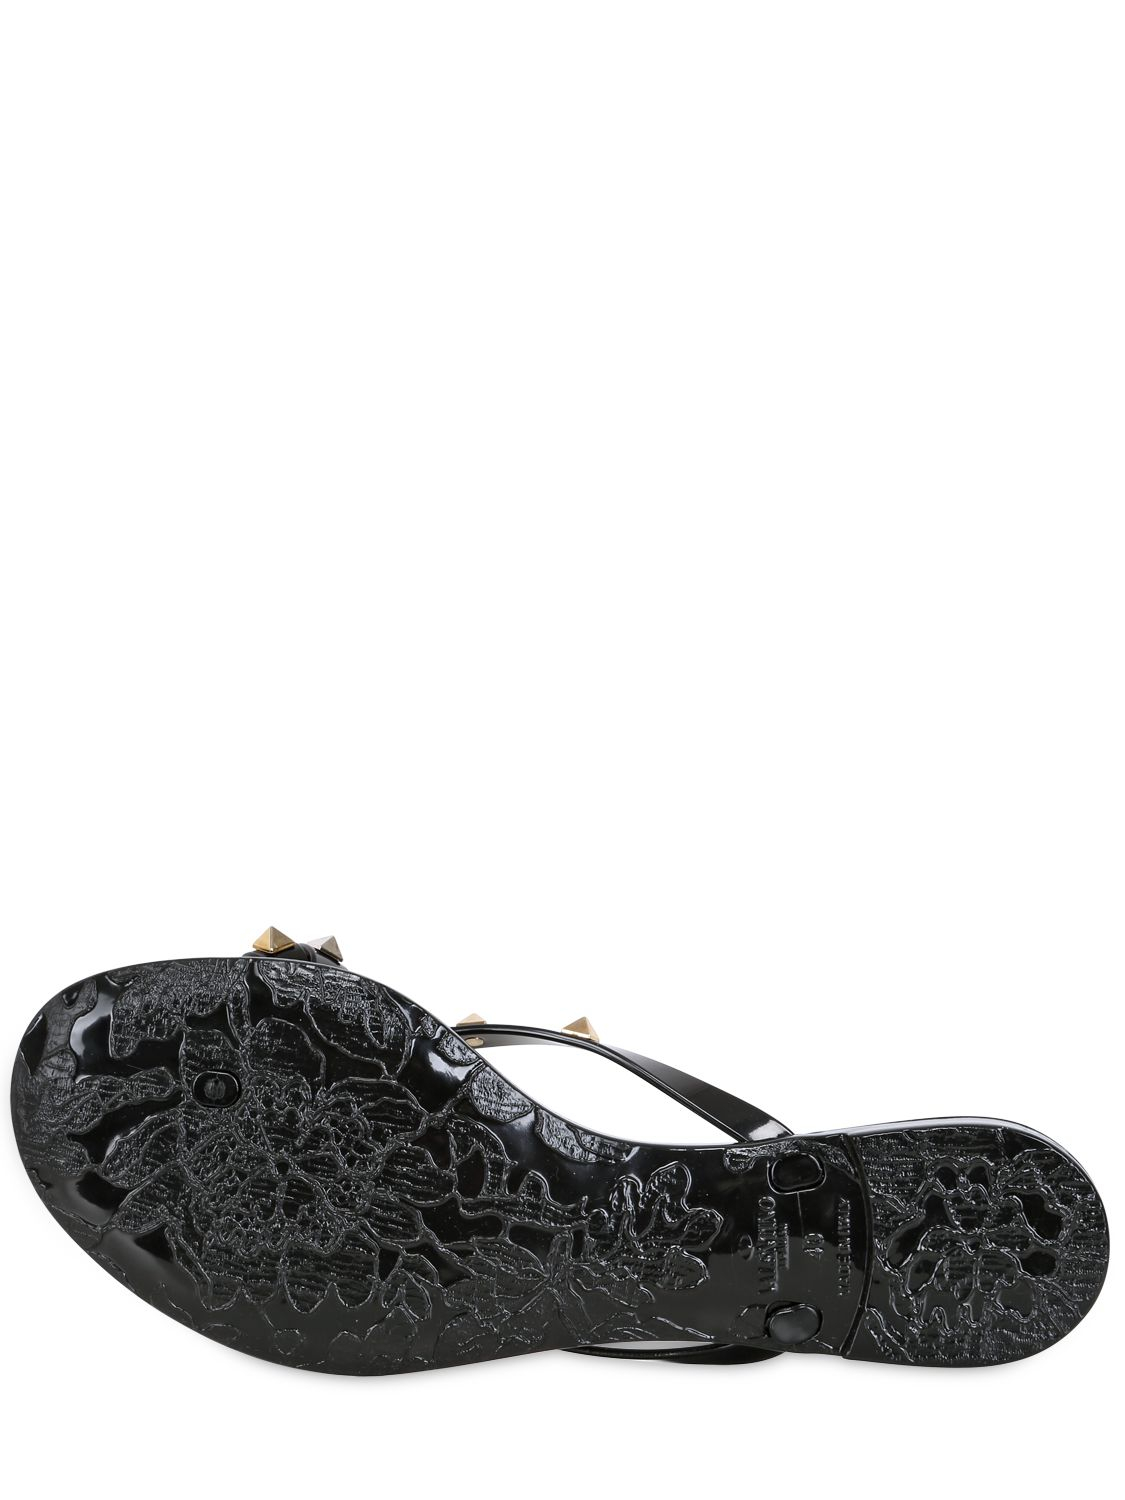 Lyst - Valentino Rubber Studded Flip Flops In Black-6664